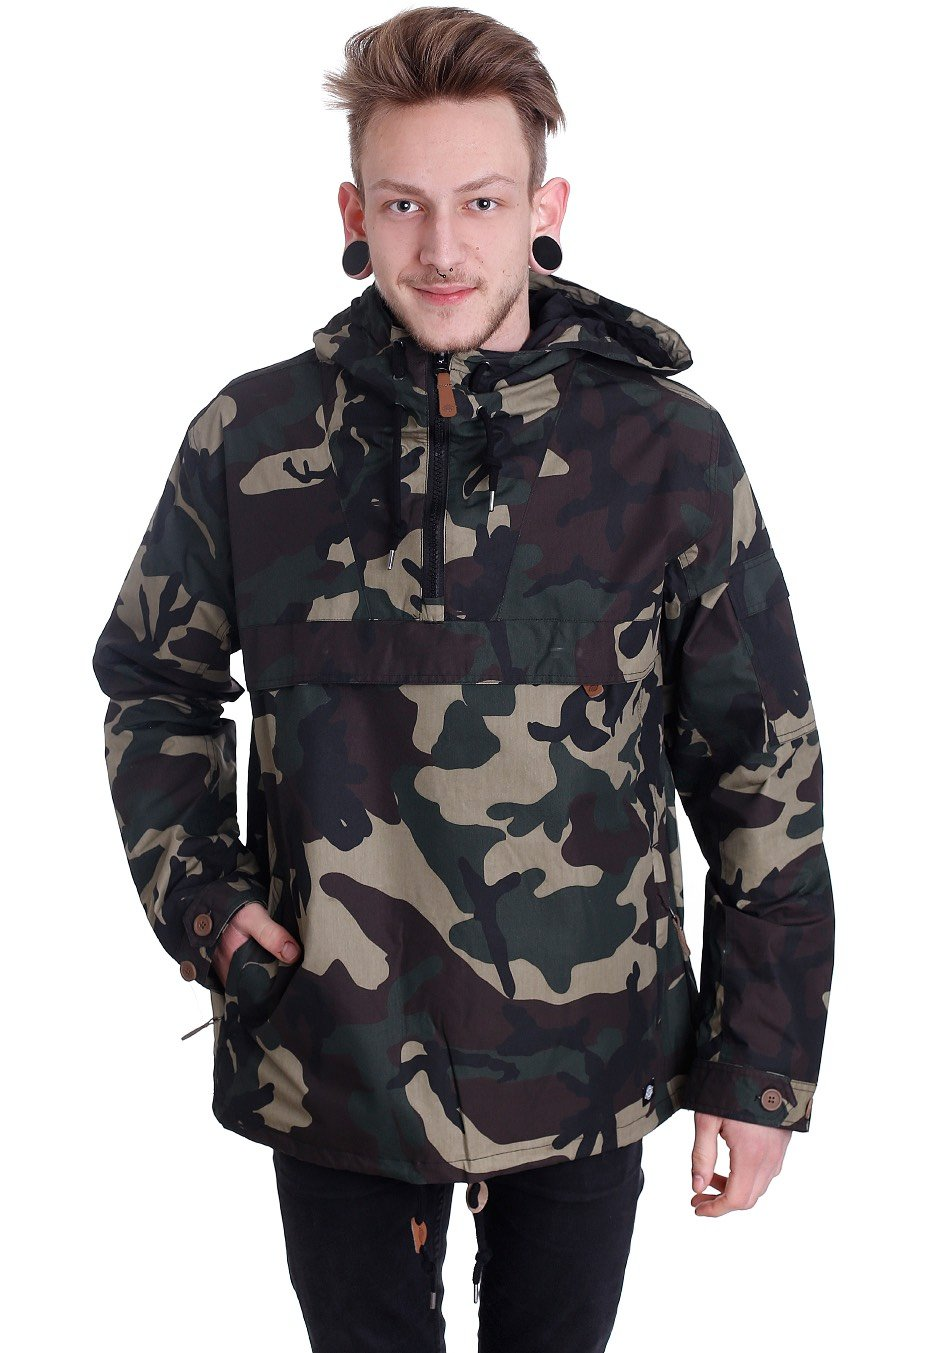 22e189adfce3a Dickies - Pollard Camouflage - Windbreaker - Impericon.com UK